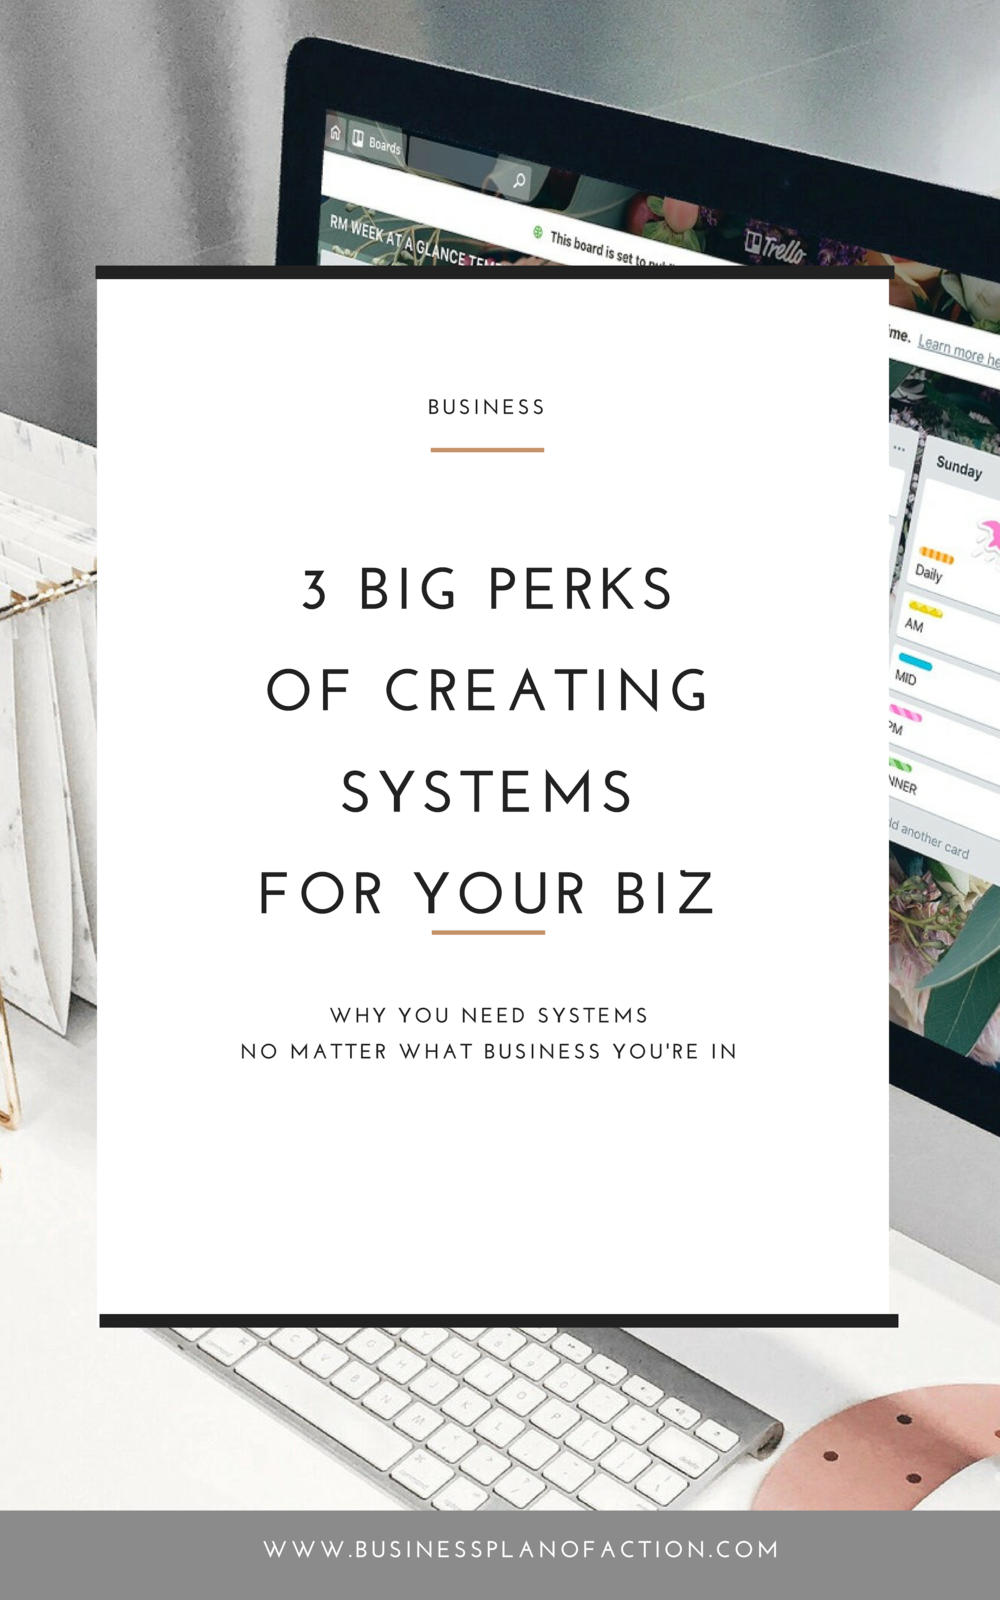 You know you need systems, but you haven't set them up yet. Learn 3 big perks to setting up systems—and grab a free tool to get started!